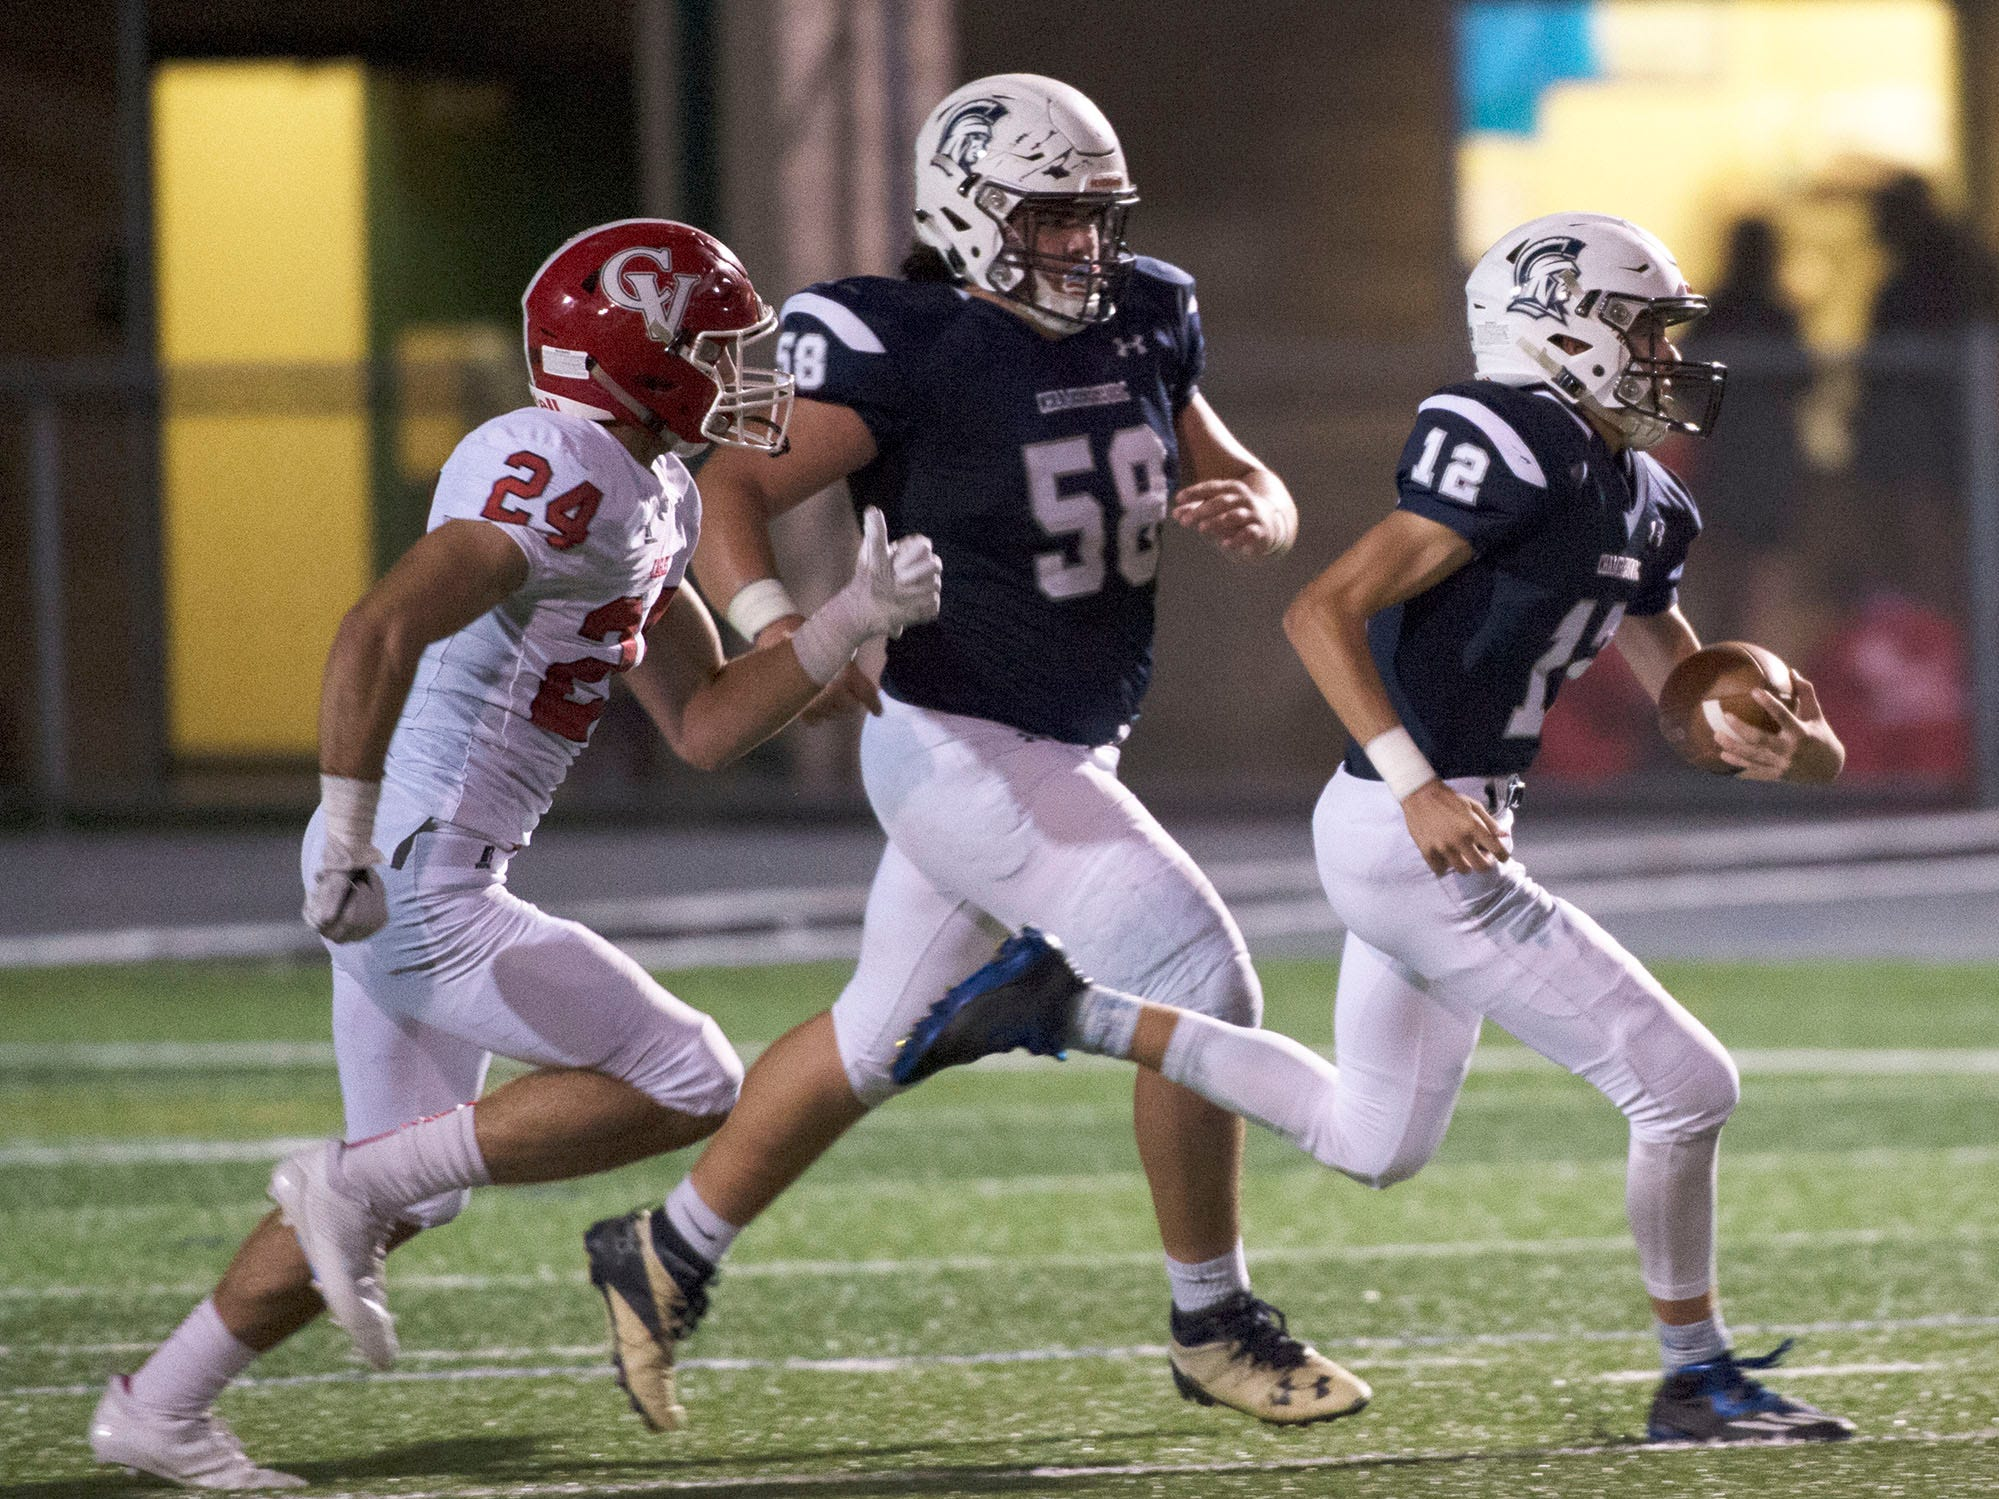 Chambersburg QB Brady Stumbaugh breaks away for a long run as teammate Tucker Karn (58) follows the play. . Chambersburg Trojans are 5-1 after a homecoming victory over Cumberland Valley 28-14 in PIAA football on Friday, Sept. 28, 2018.